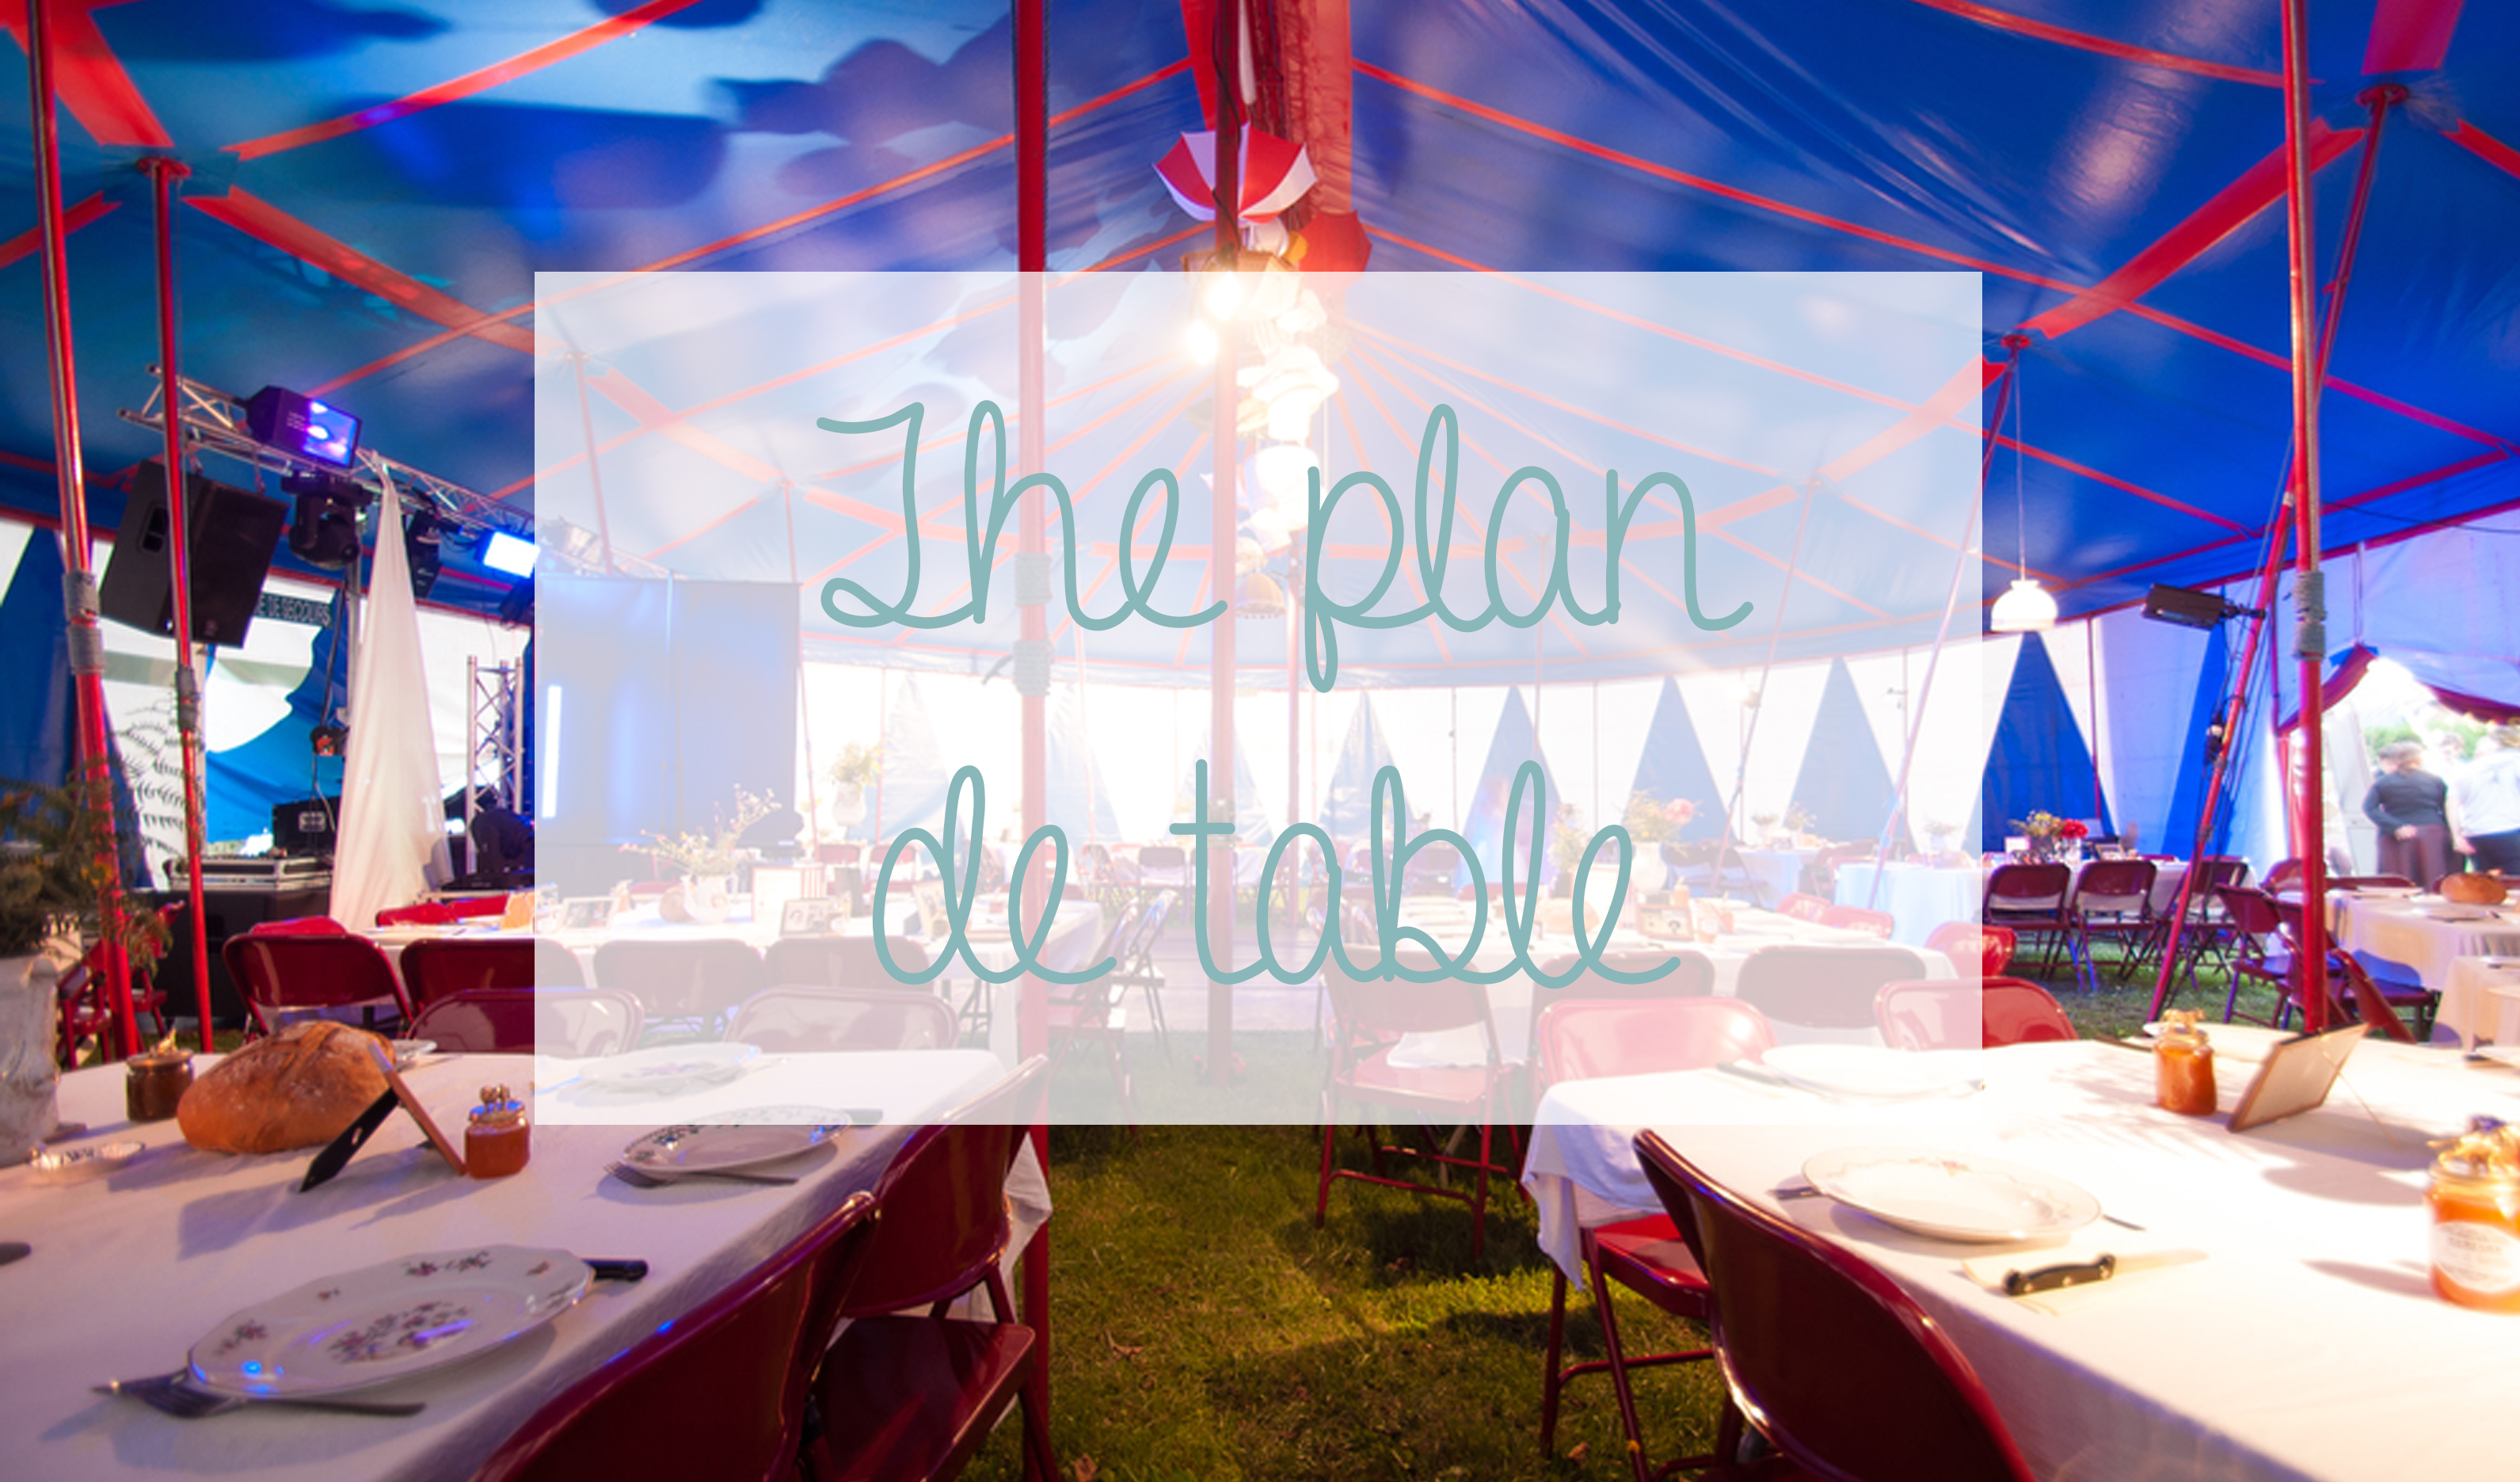 The plan de table